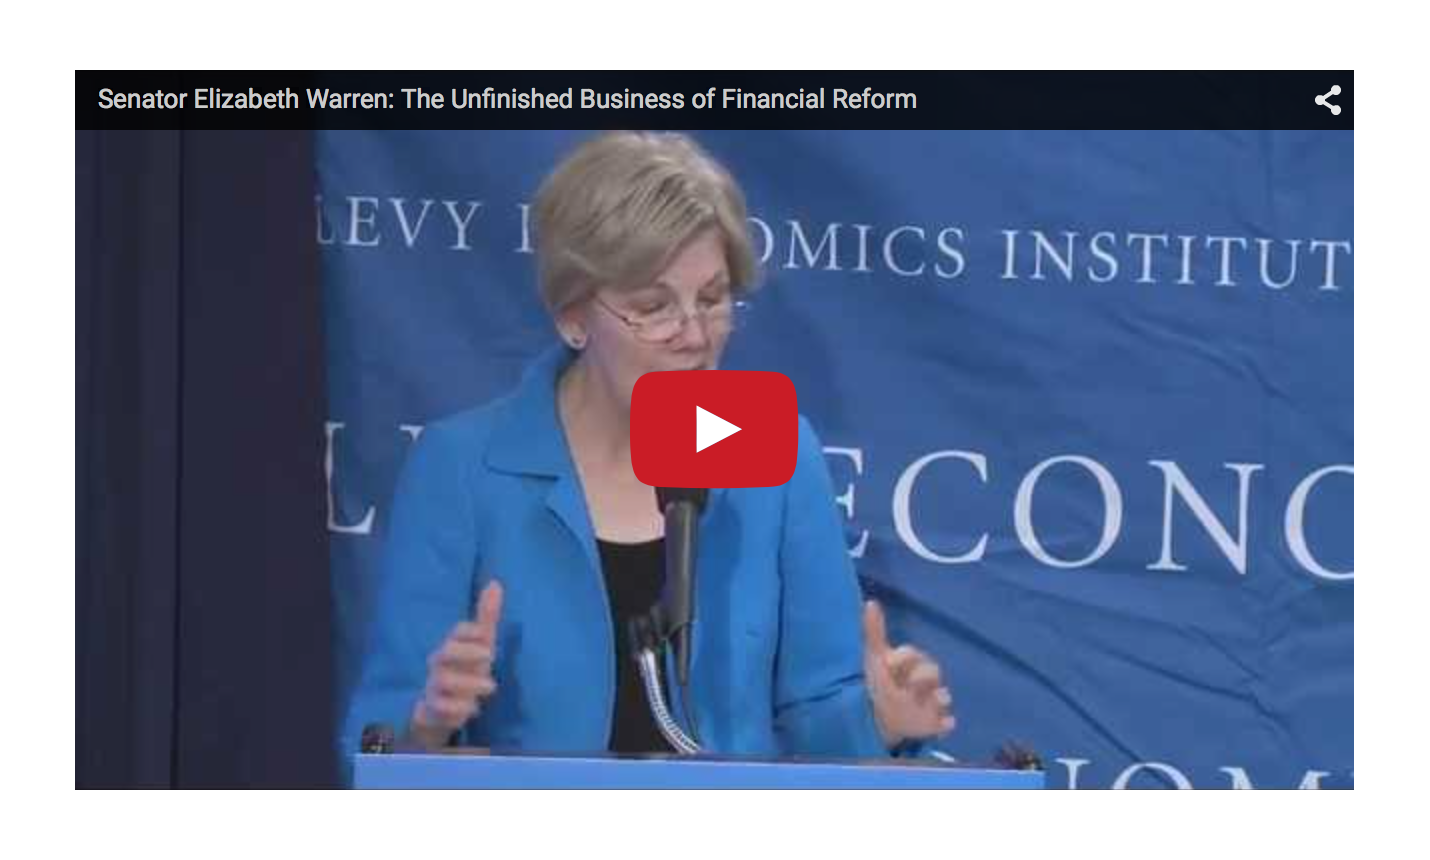 Elizabeth Warren - The 14 Trillion Dollar Scam and the Unfinished Business of Financial Reform